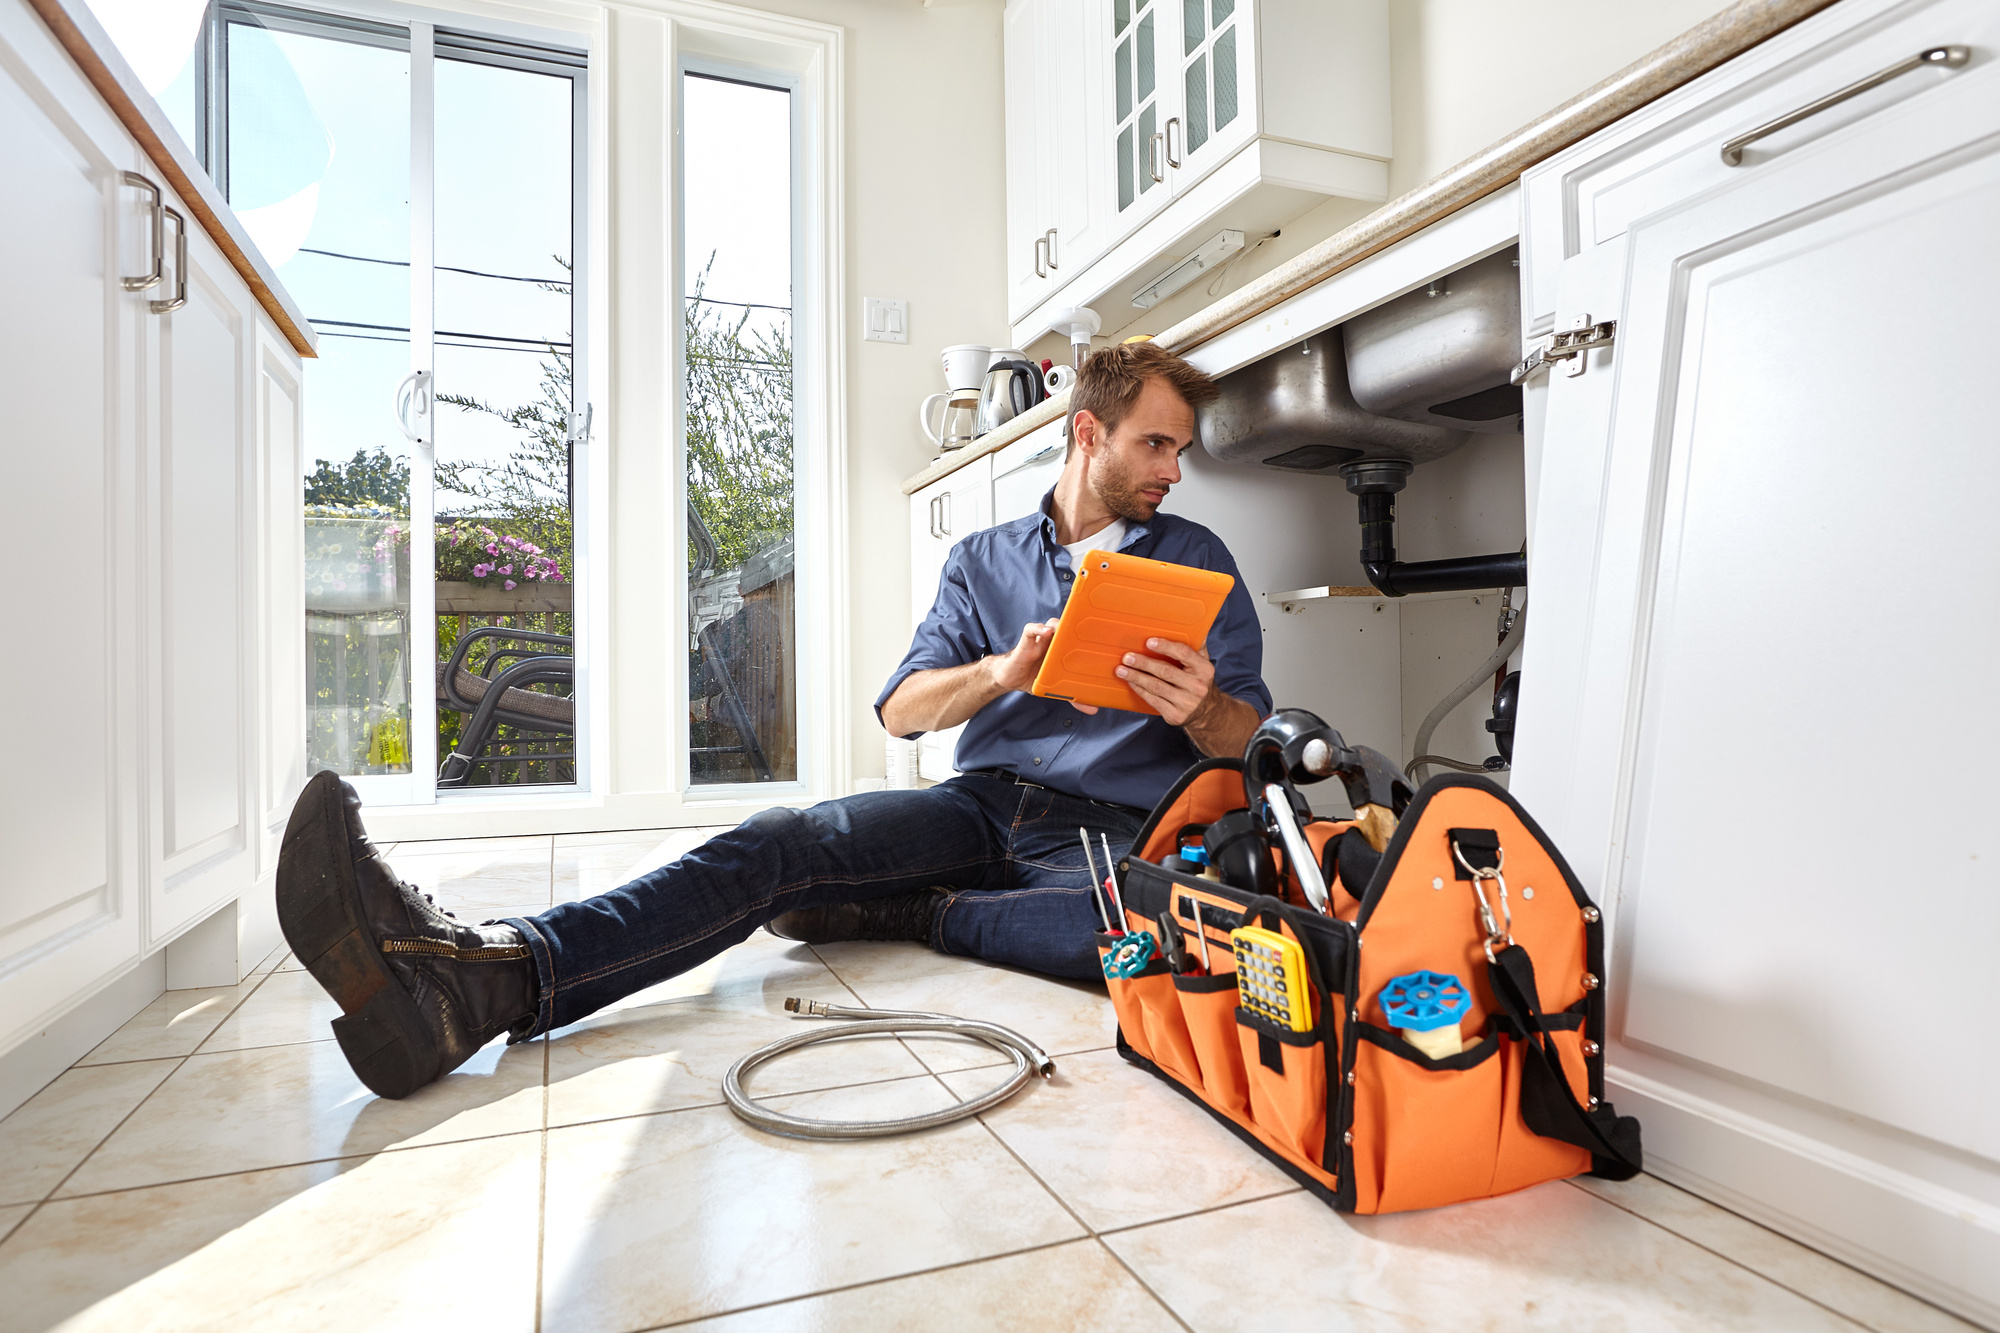 How to Find the Best Local Plumber in St. Petersburg, FL